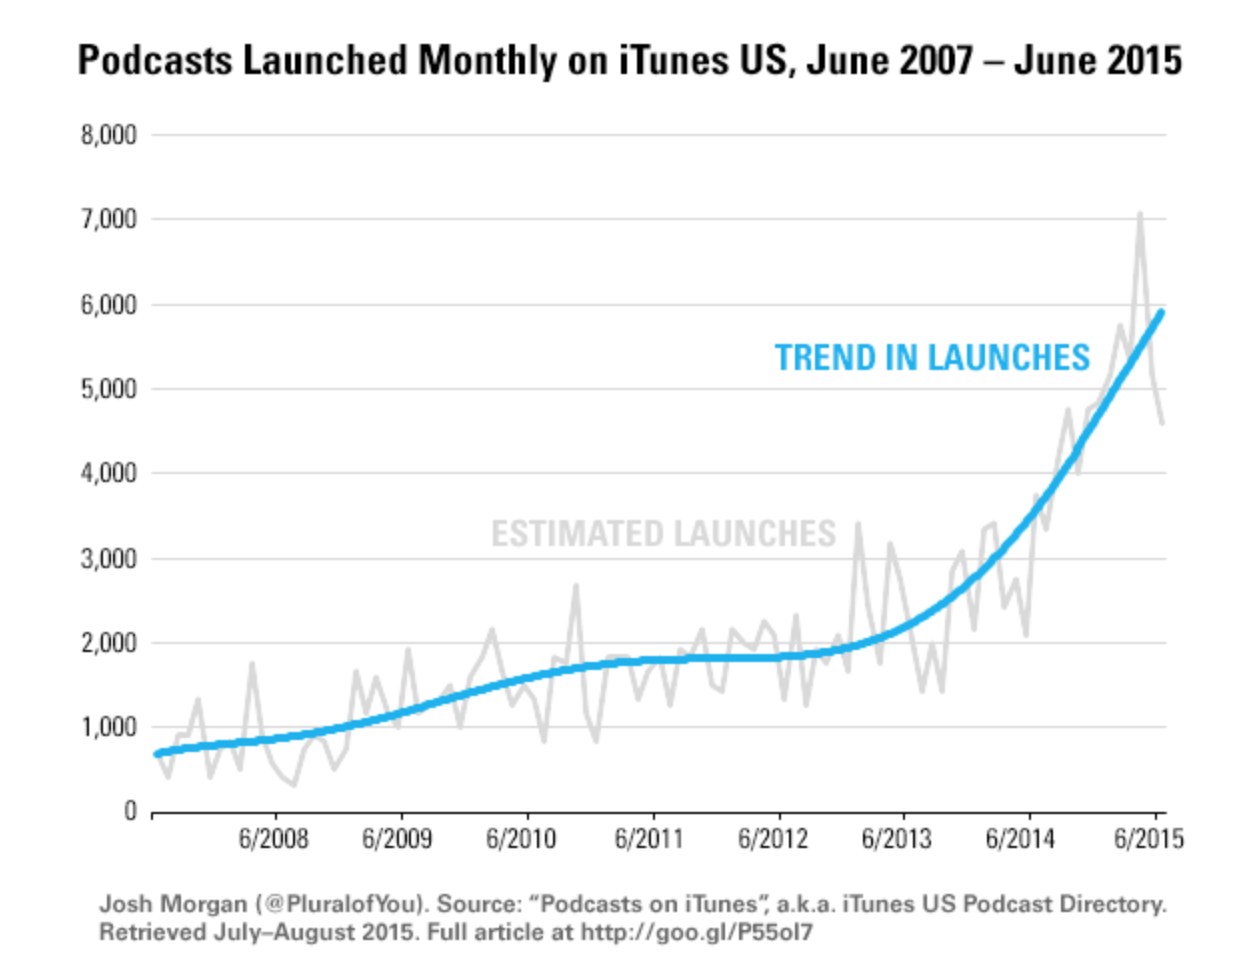 Trend in Launches